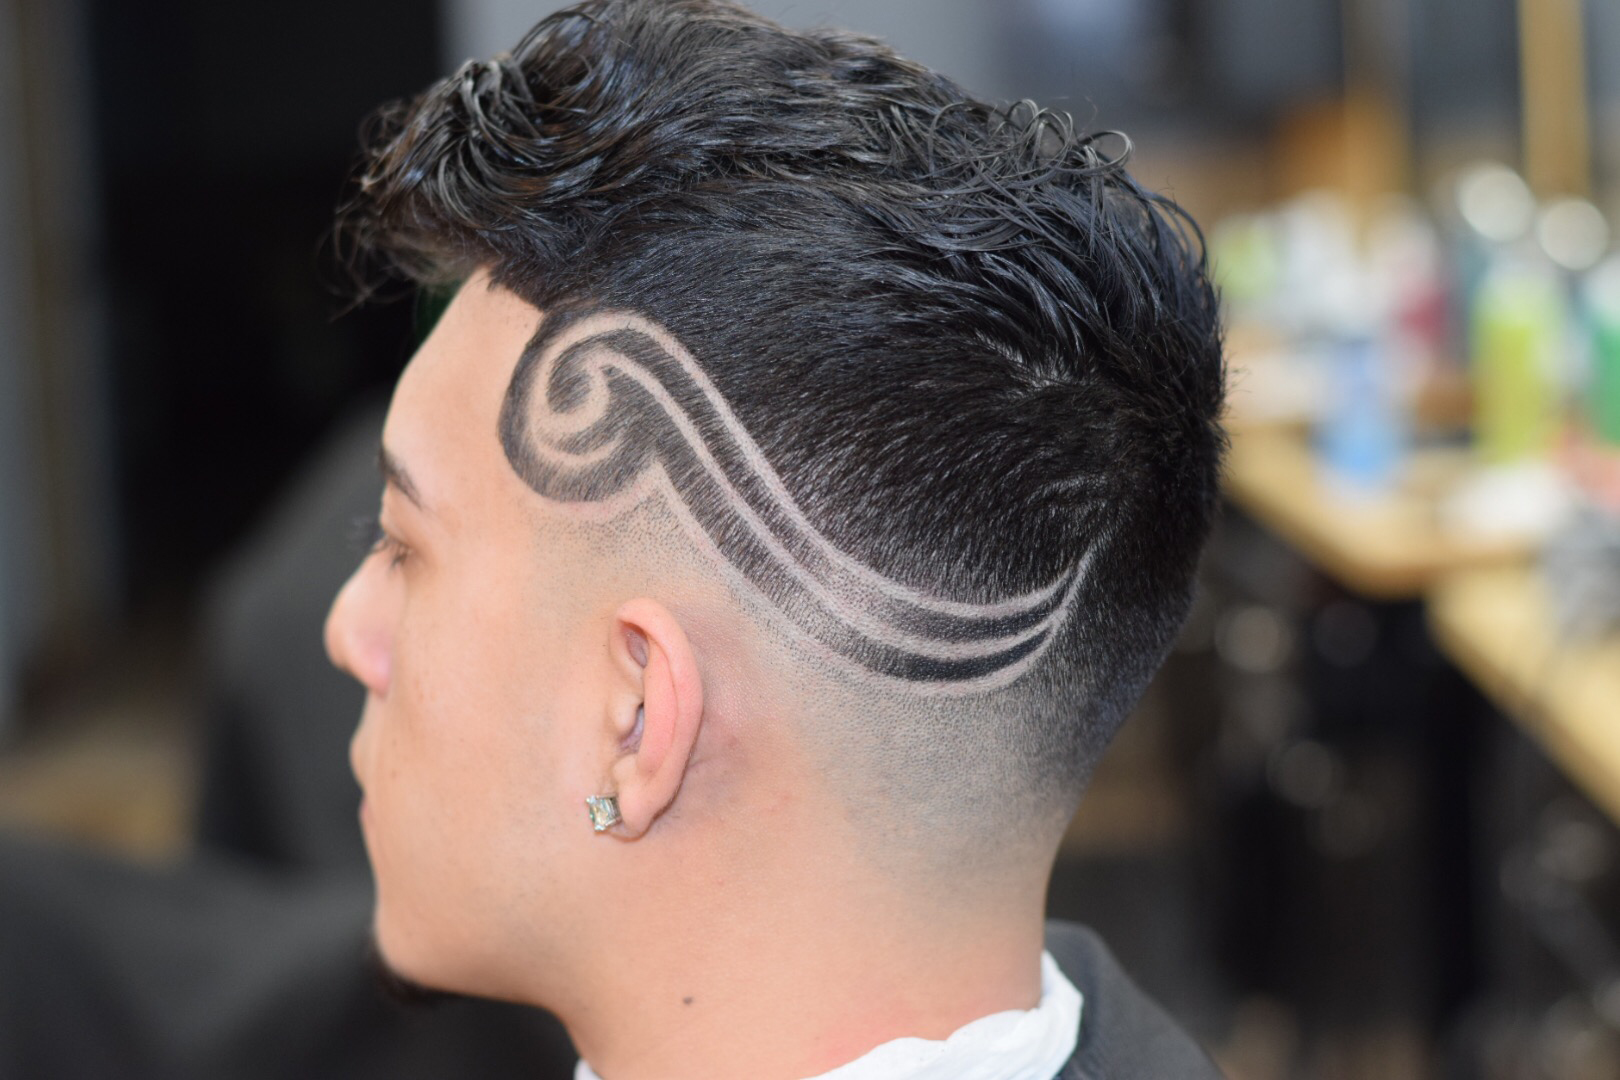 How To: Low-Medium Bald-Fade